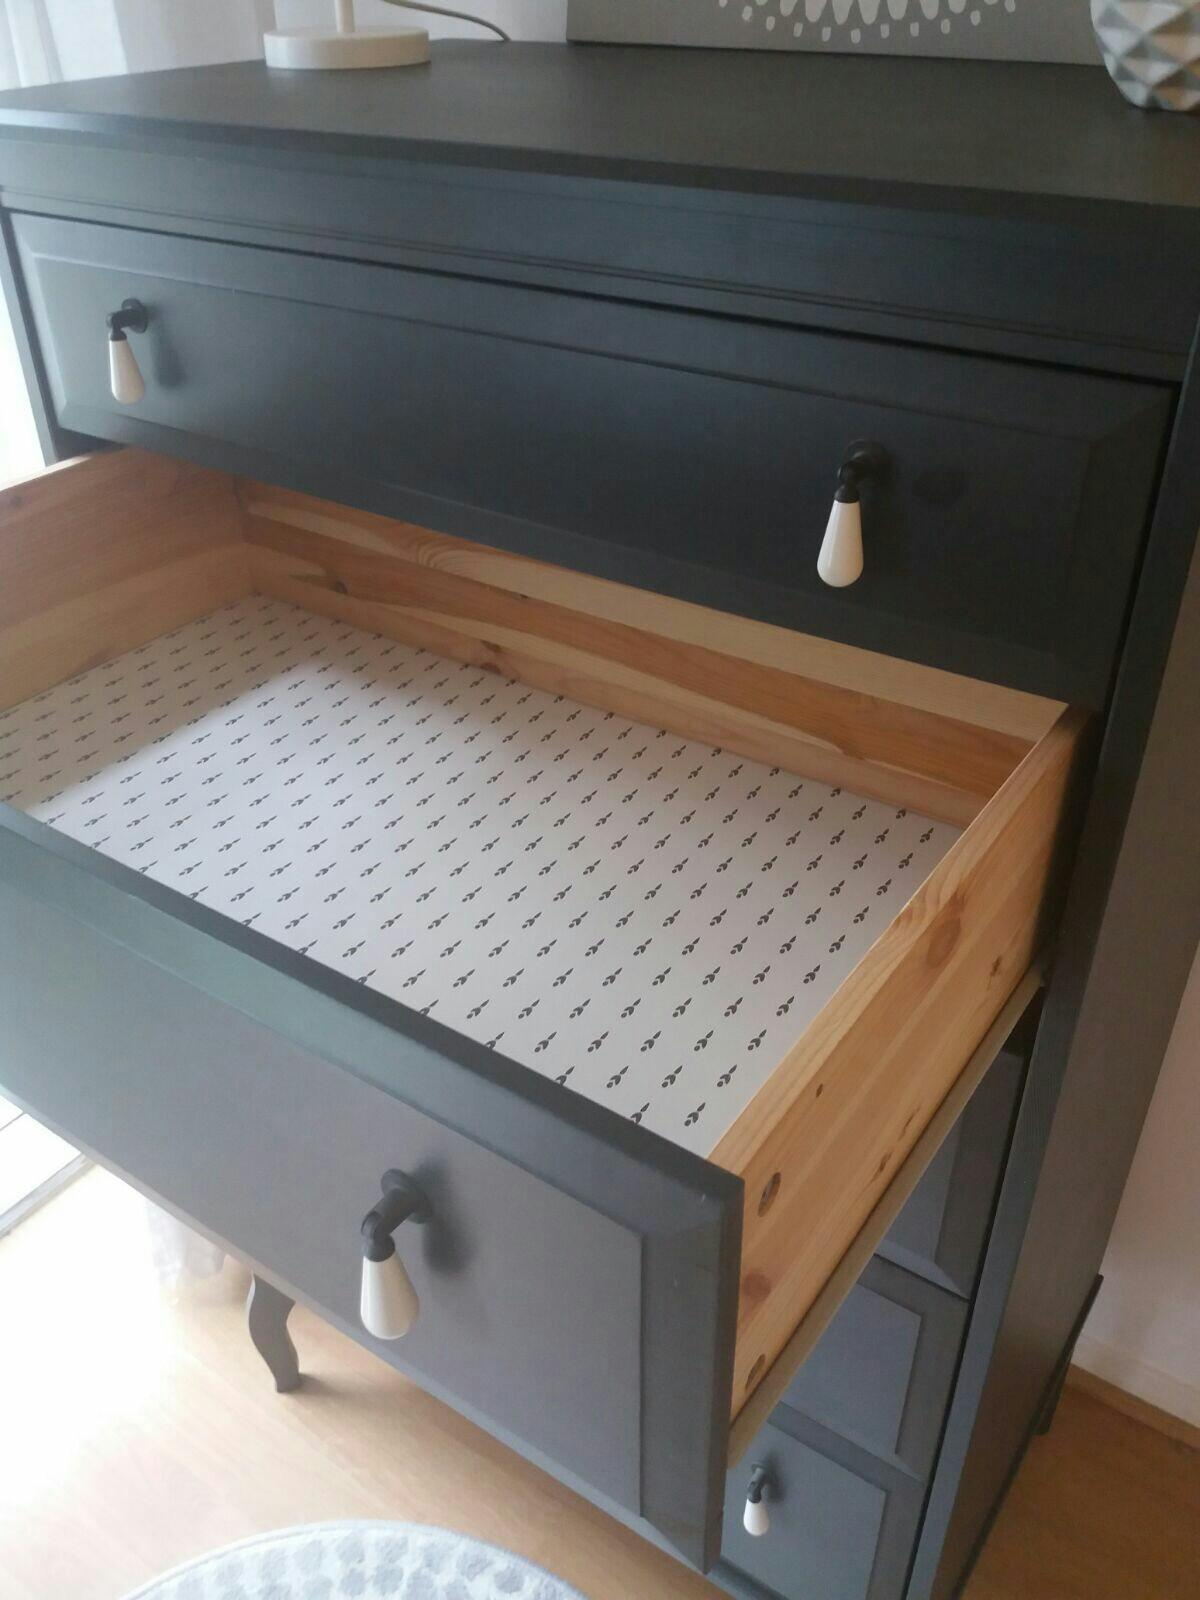 Ikea Edland 5 Drawers Chestlimited Edition In Lu2 Luton For